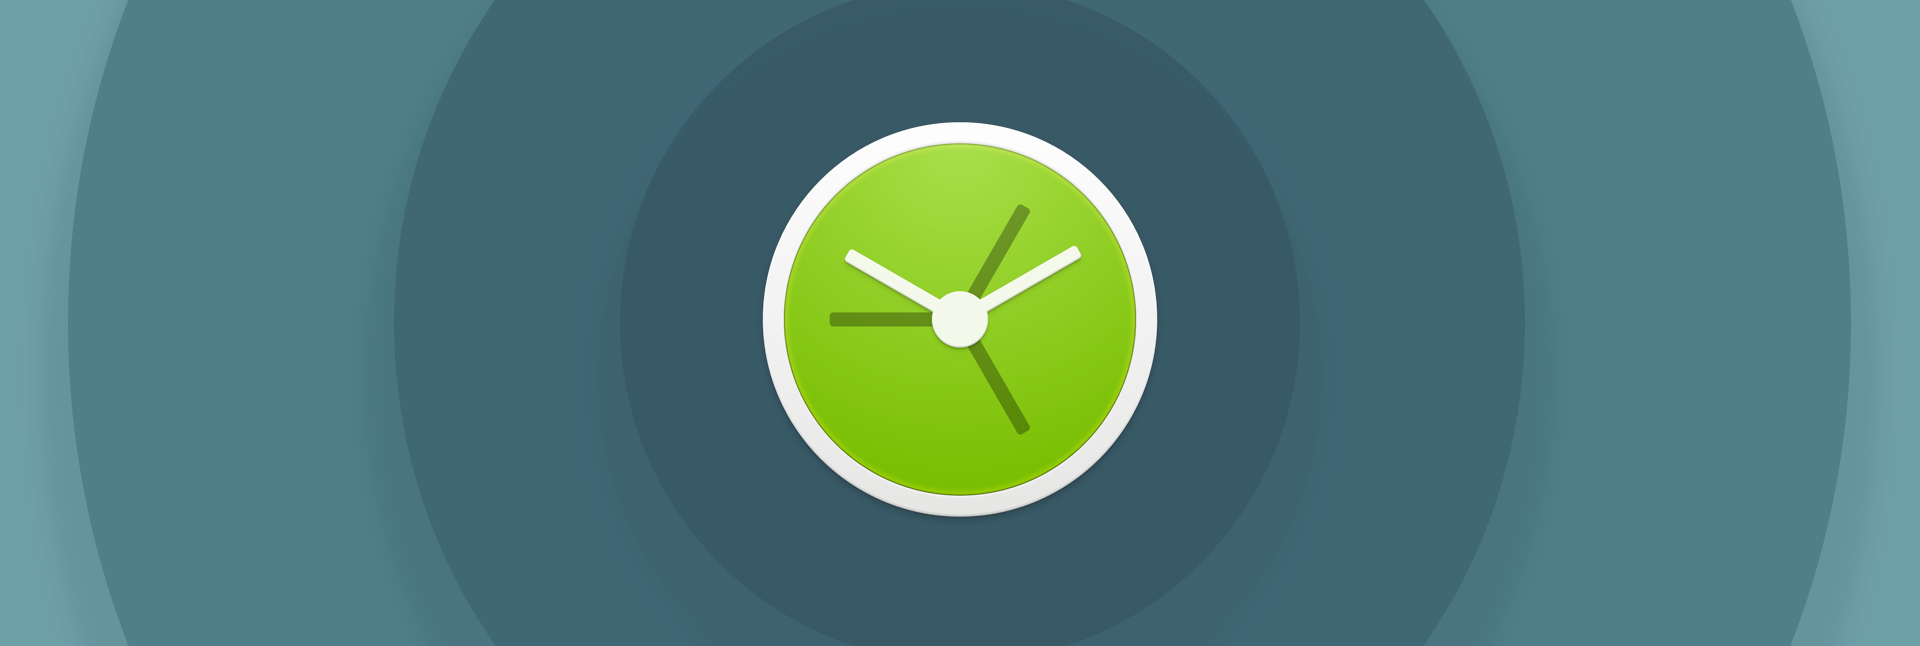 Coordinate times and events half a world away with World